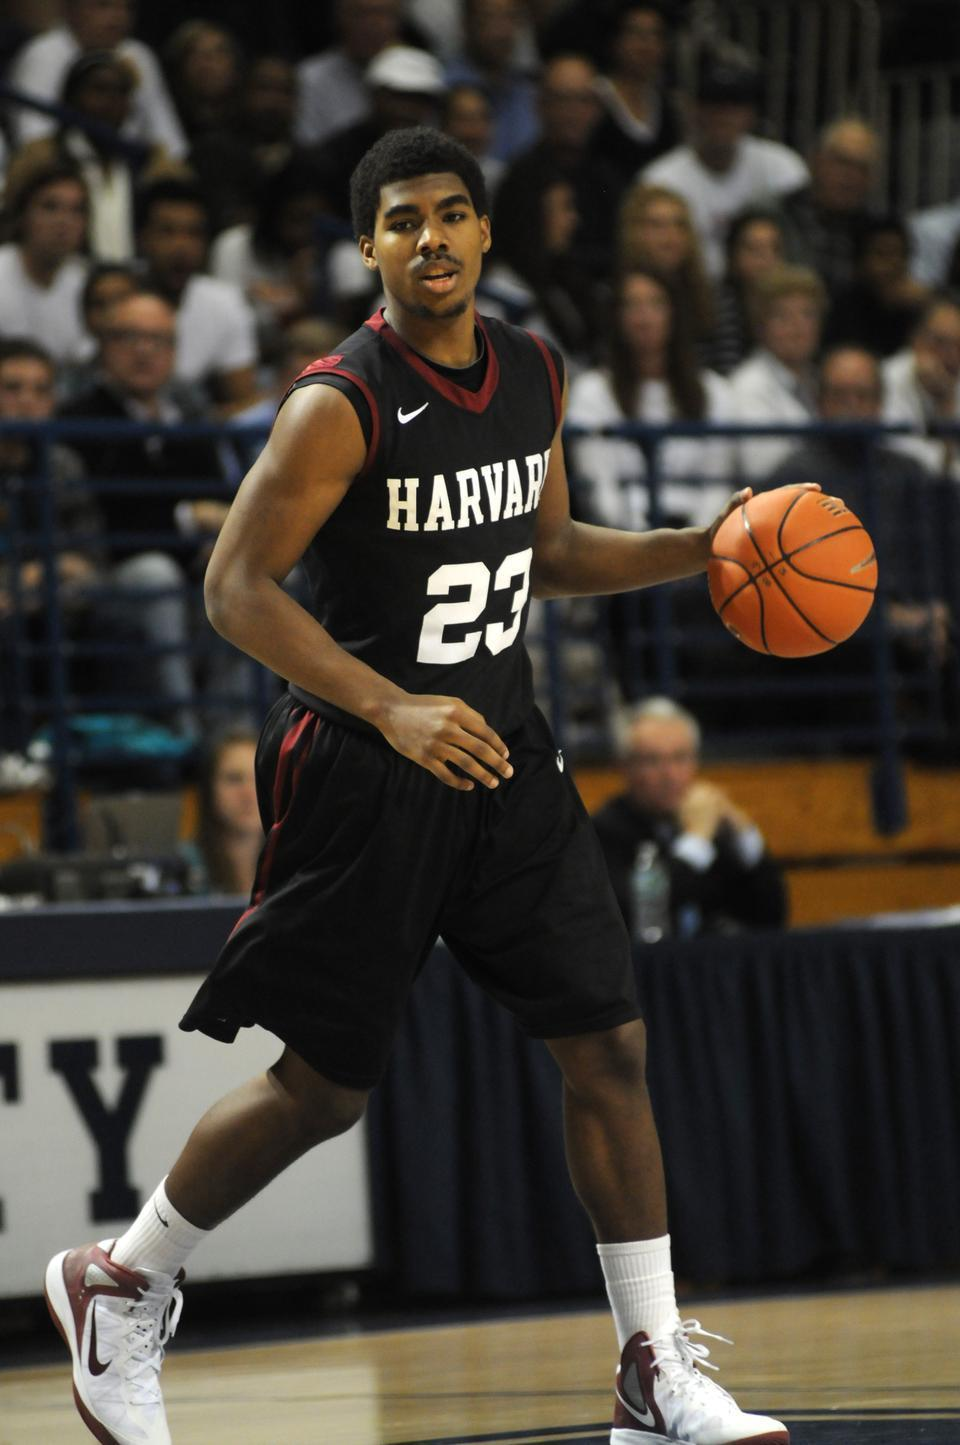 Shown here in earlier action, sophomore wing Wes Saunders scored a team-high 16.5 points per game in the Harvard men's basketball team's four contests in Italy.